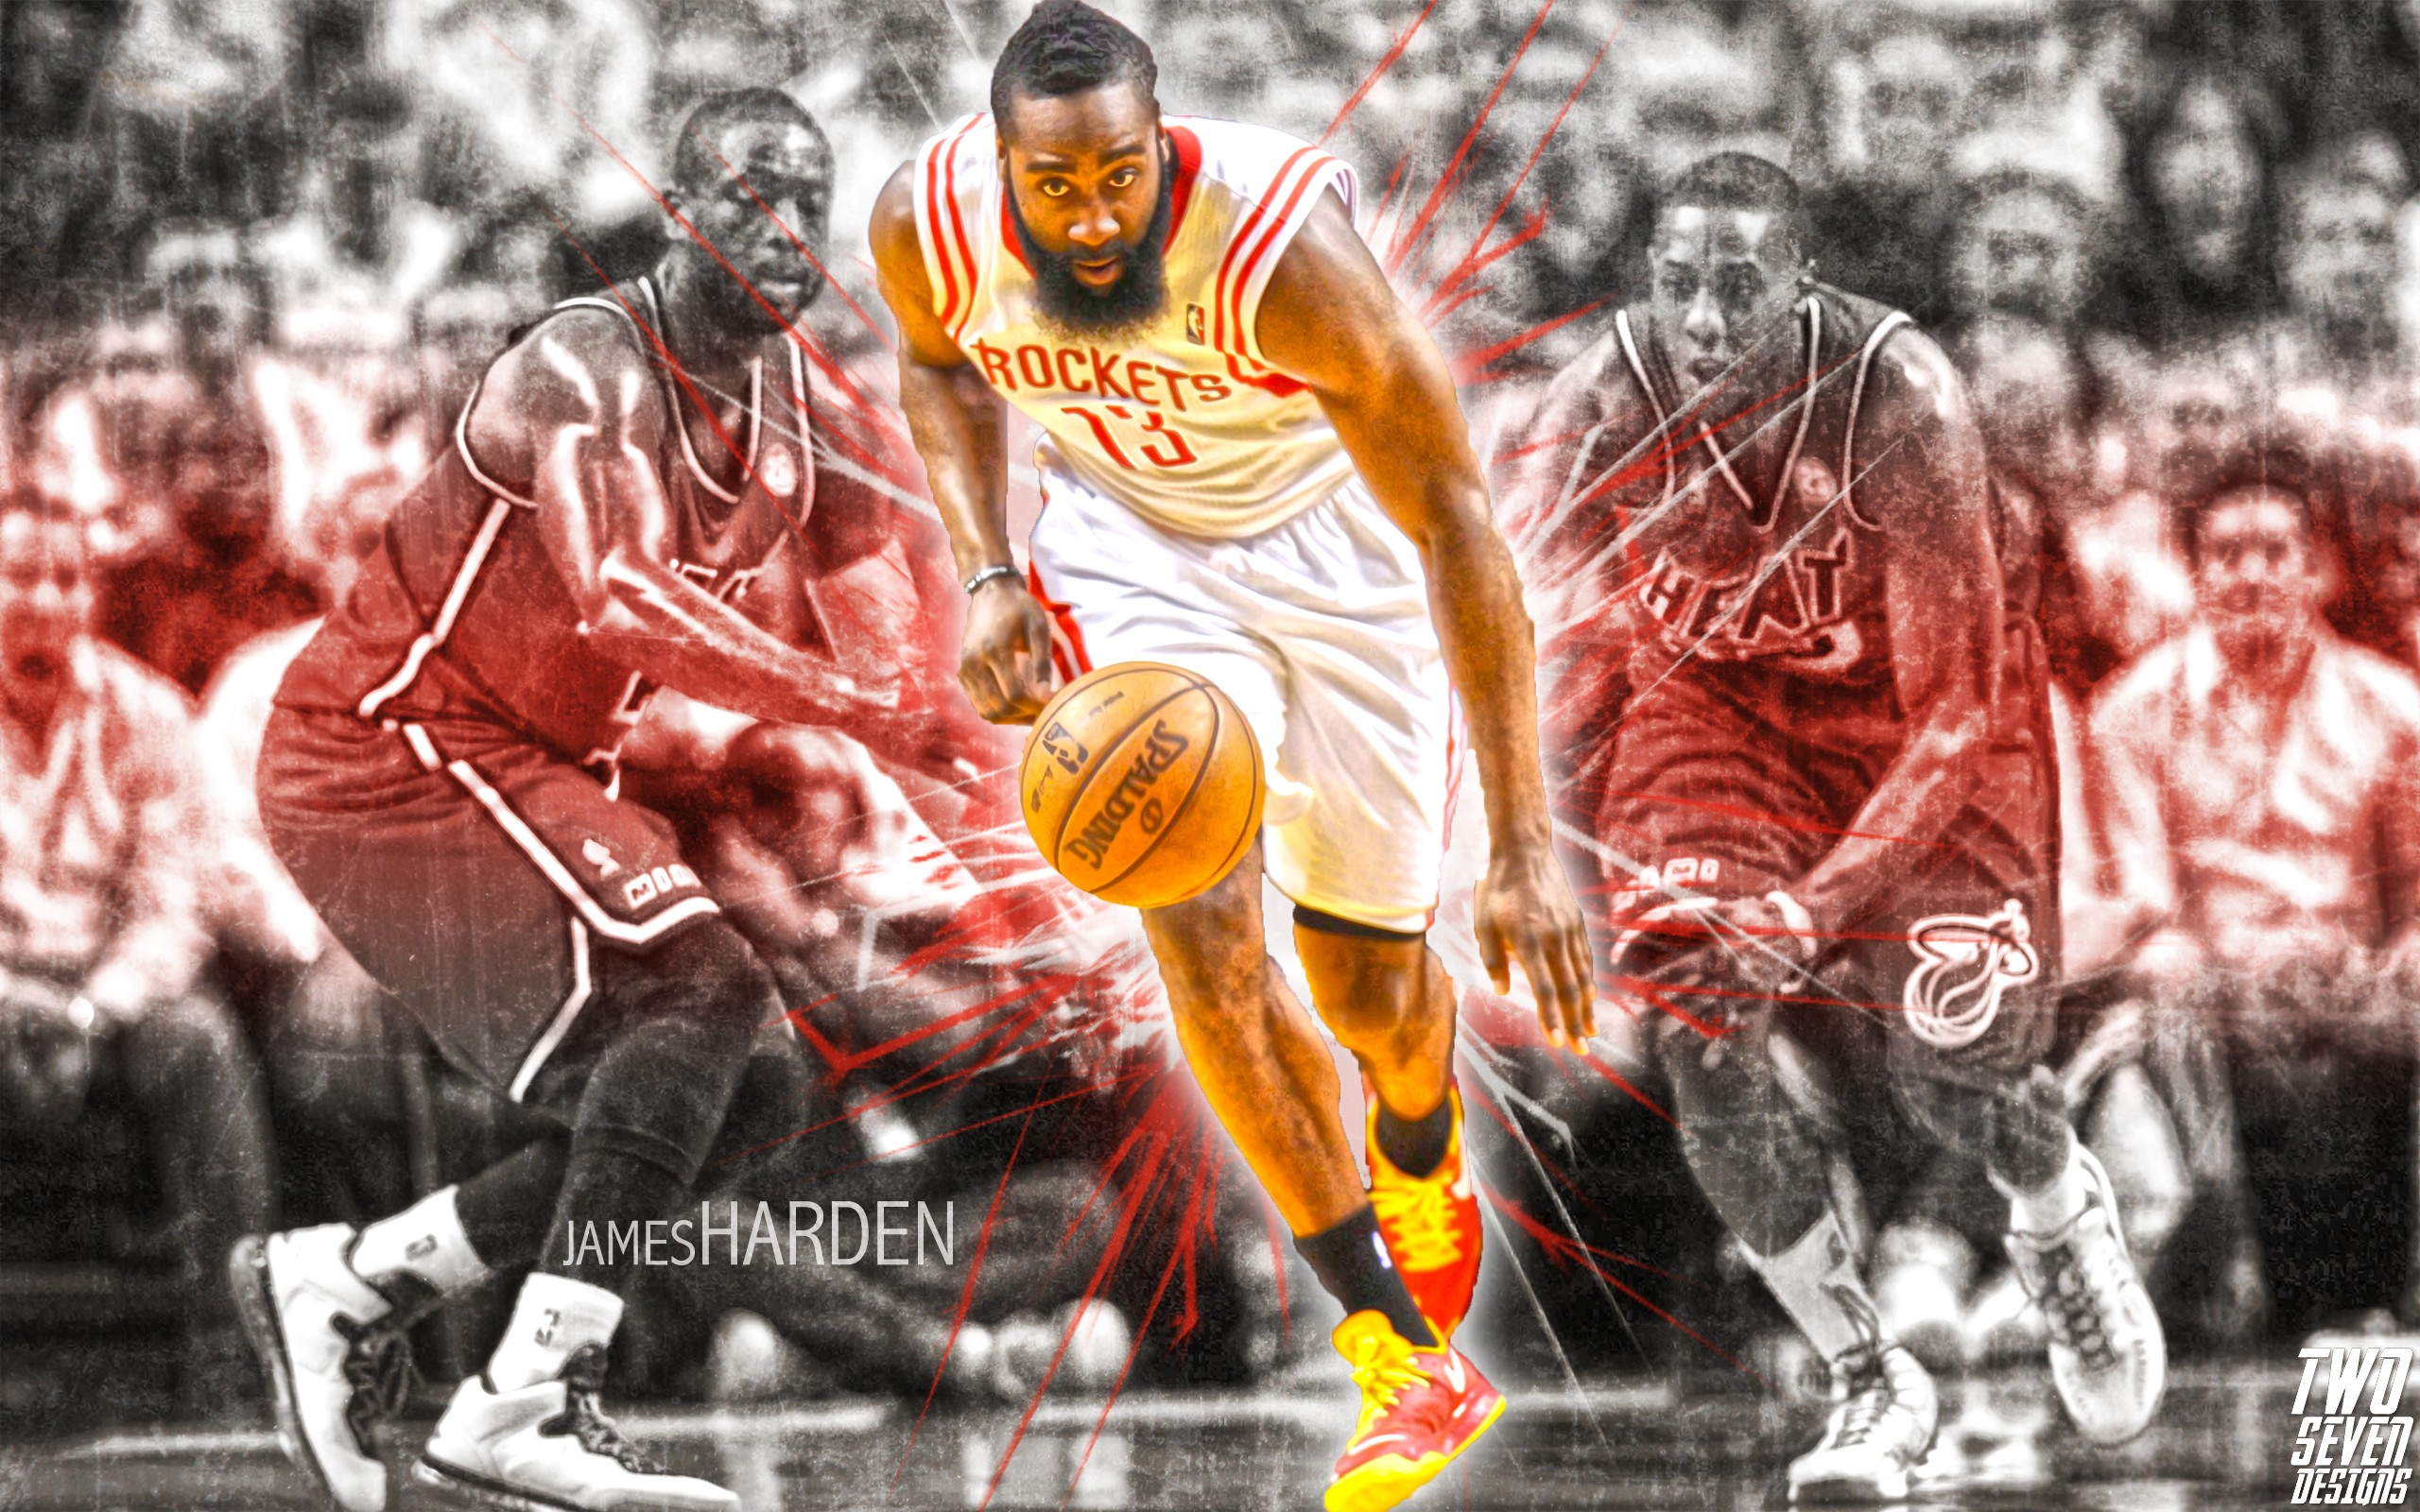 Top Free Dope Nba Backgrounds: 50+ Nba Wallpapers ·① Download Free HD Backgrounds For